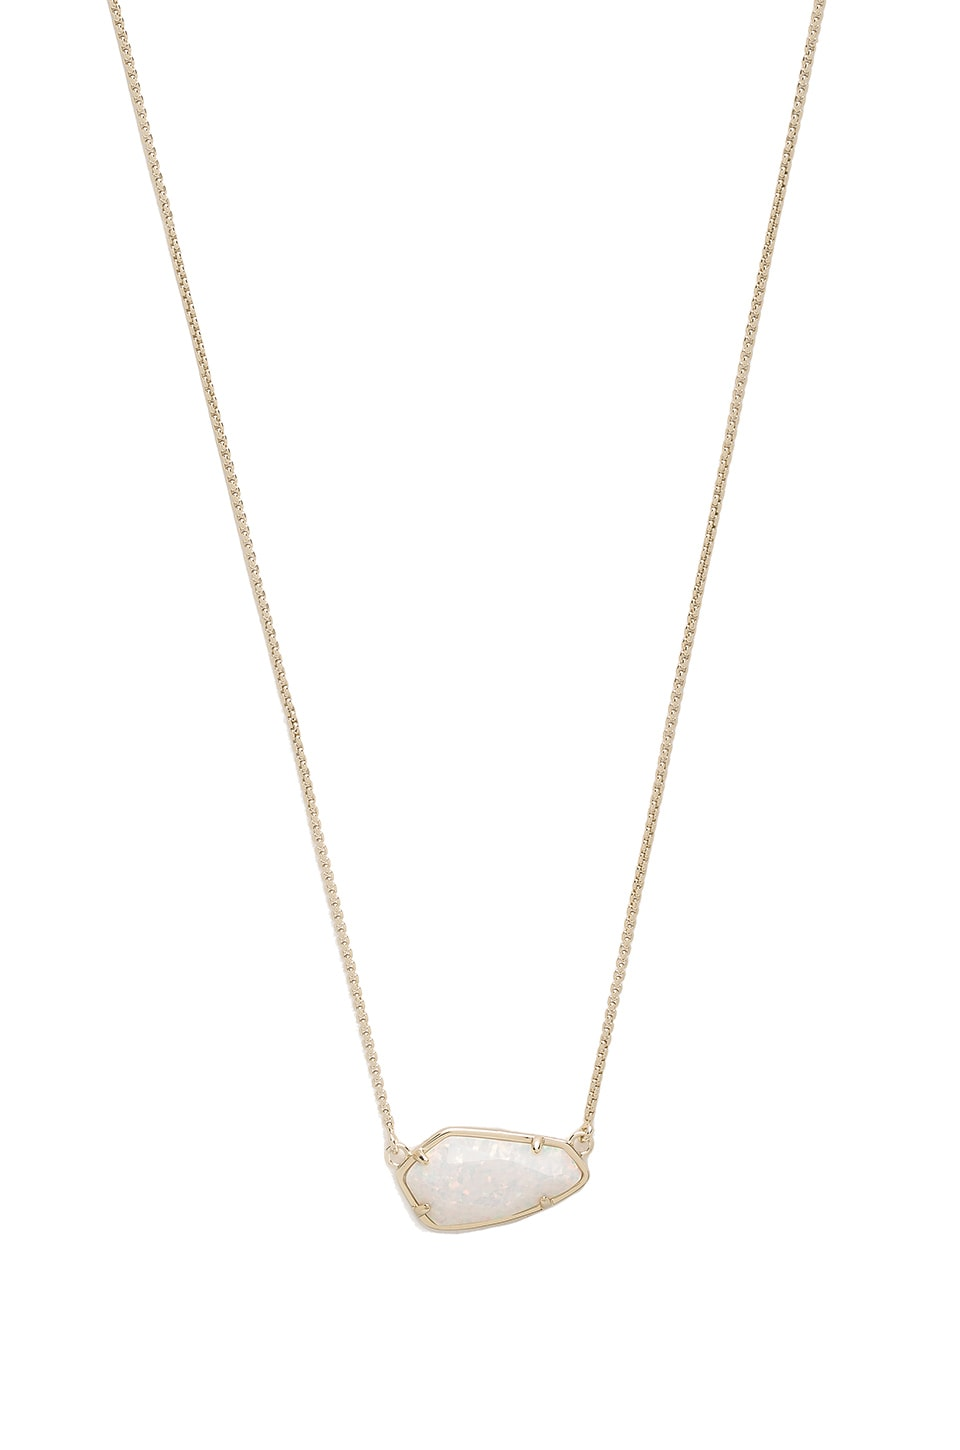 Kendra Scott Cami Necklace in Gold & White Kyocera Opal